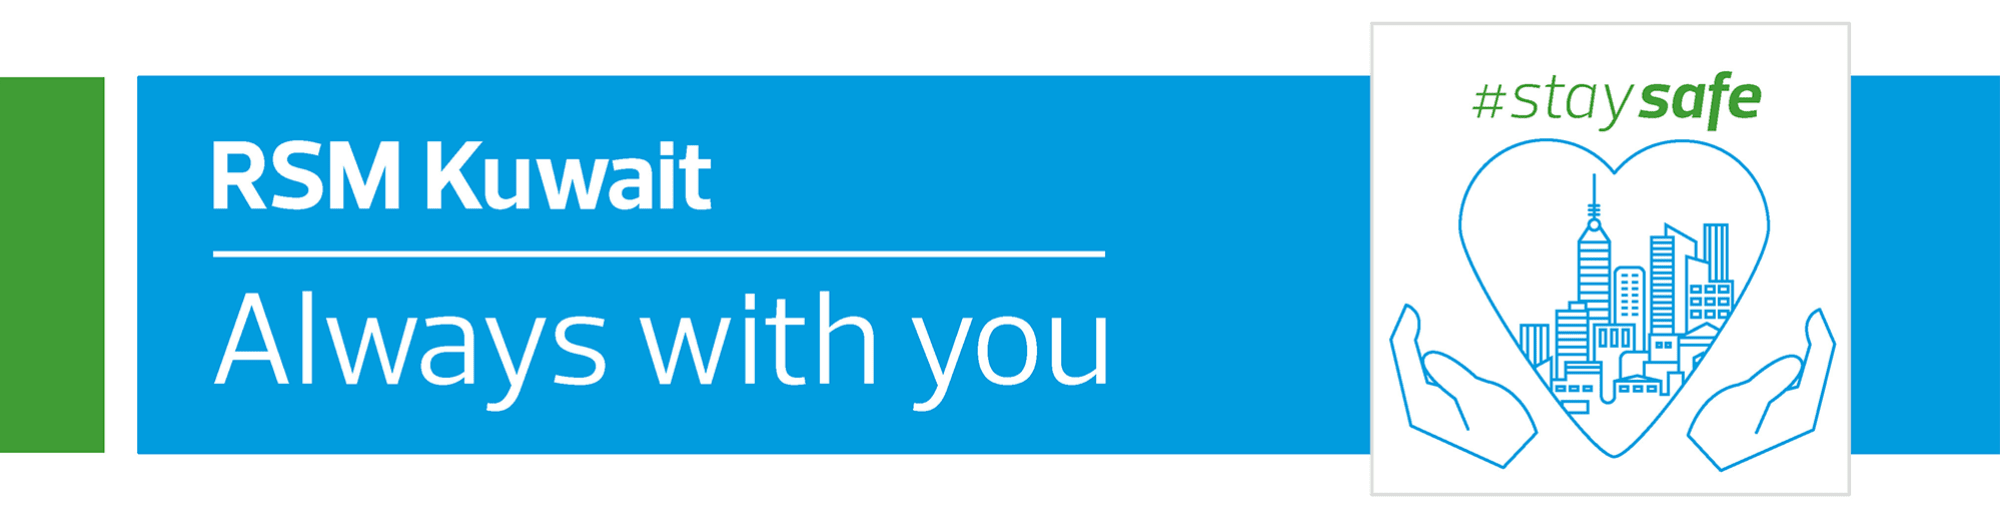 always-with-you-banner.png